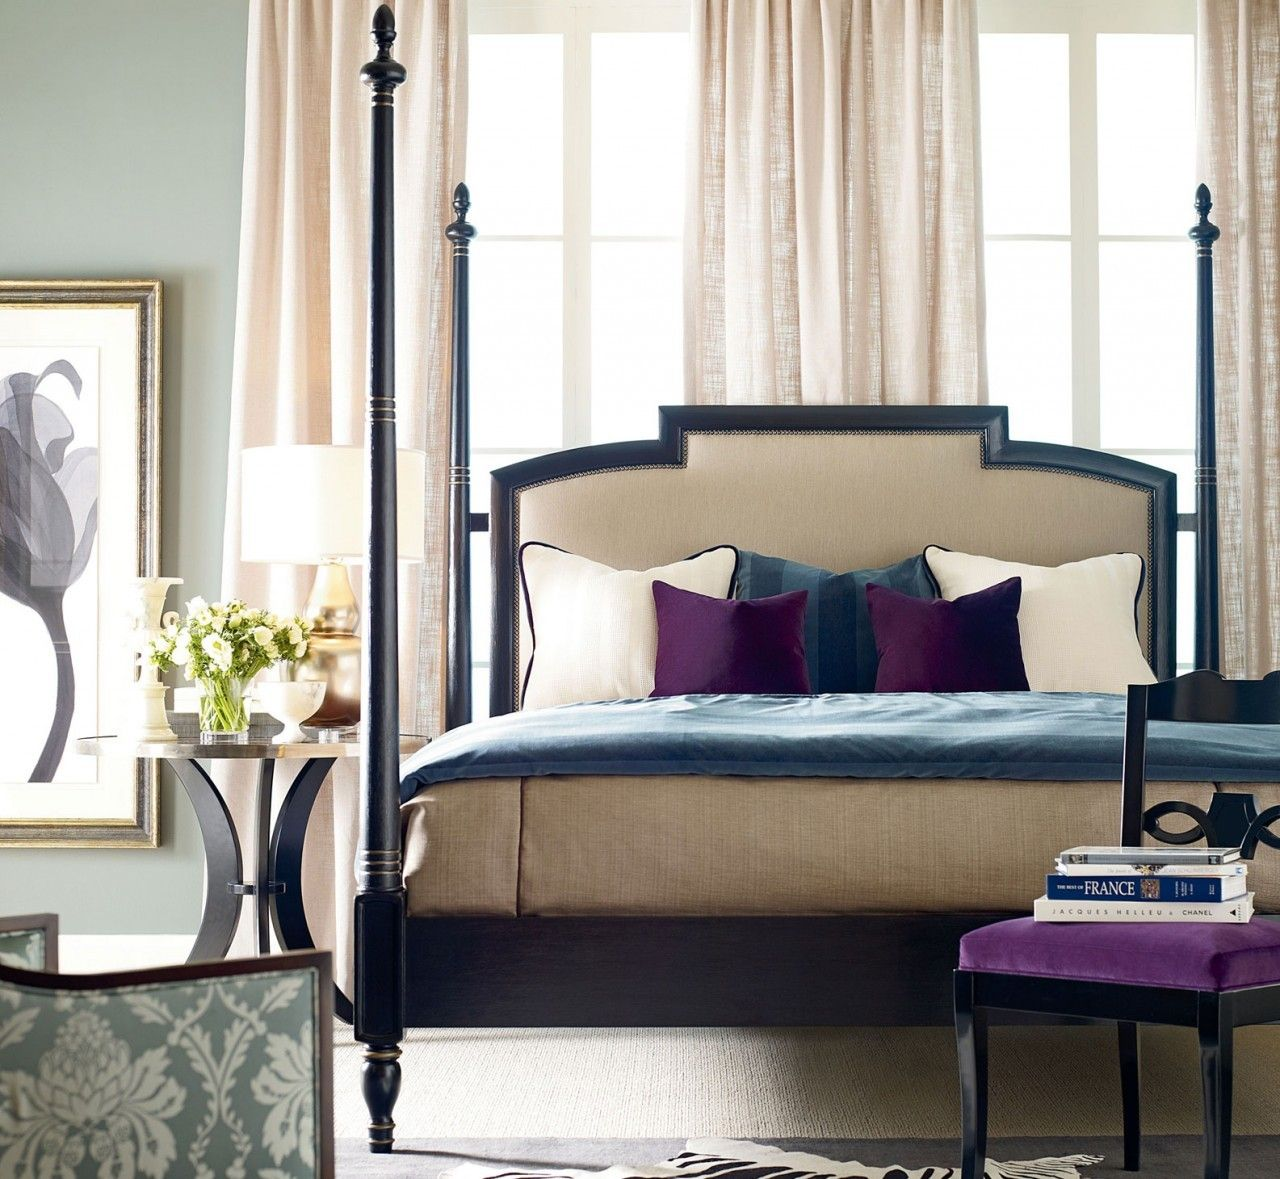 Download Full Size Image: Upholstered Headboard 1280x1179 Henredon ...Oh my! I & Download Full Size Image: Upholstered Headboard 1280x1179 Henredon ... pillowsntoast.com